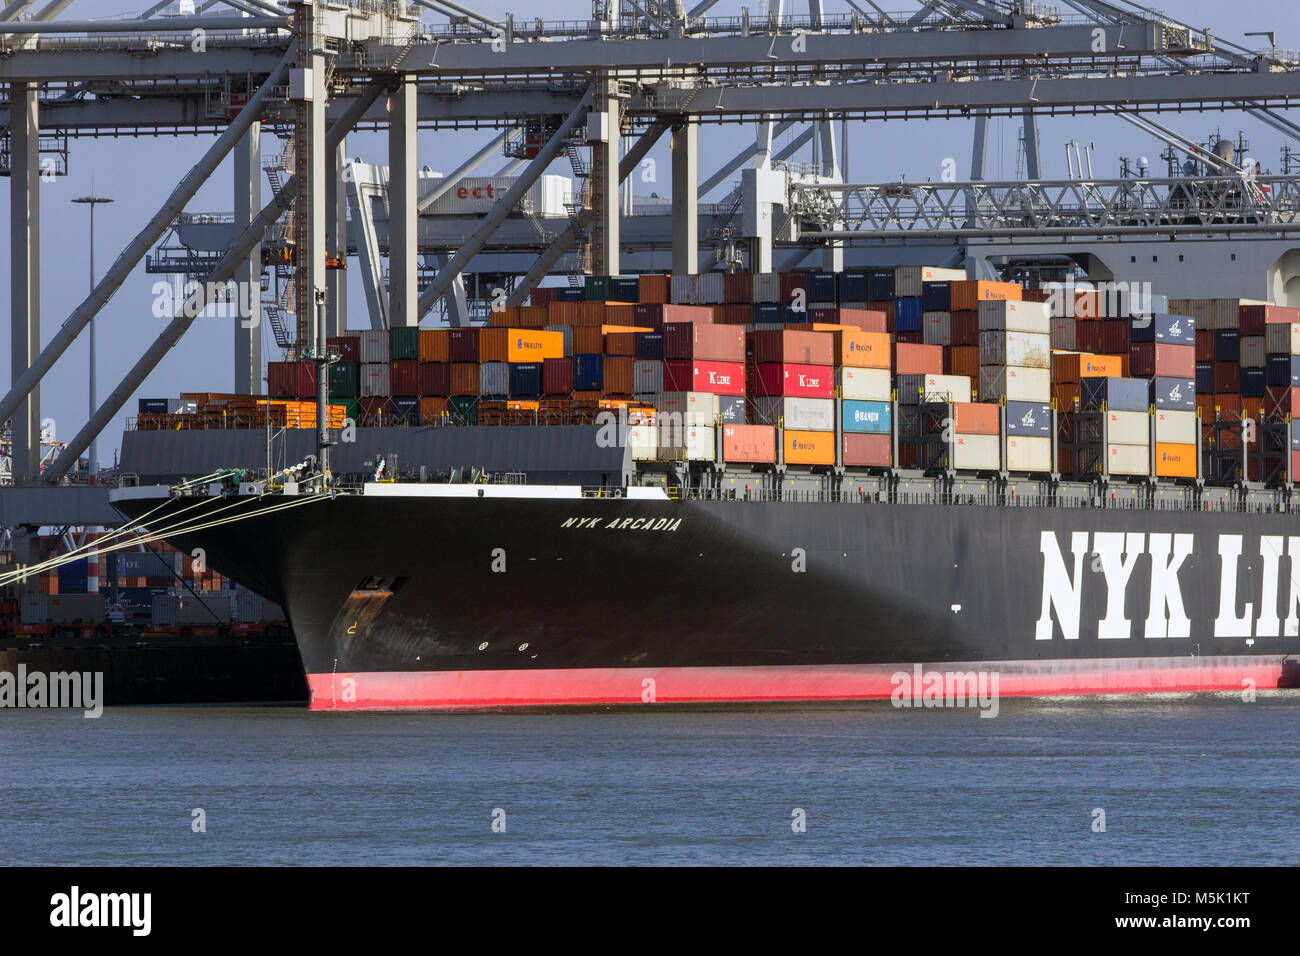 ROTTERDAM, THE NETHERLANDS - JAN 13, 2012: Nyk Line container ship loaded by gantry cranes at the ECT Terminal in - Stock Image